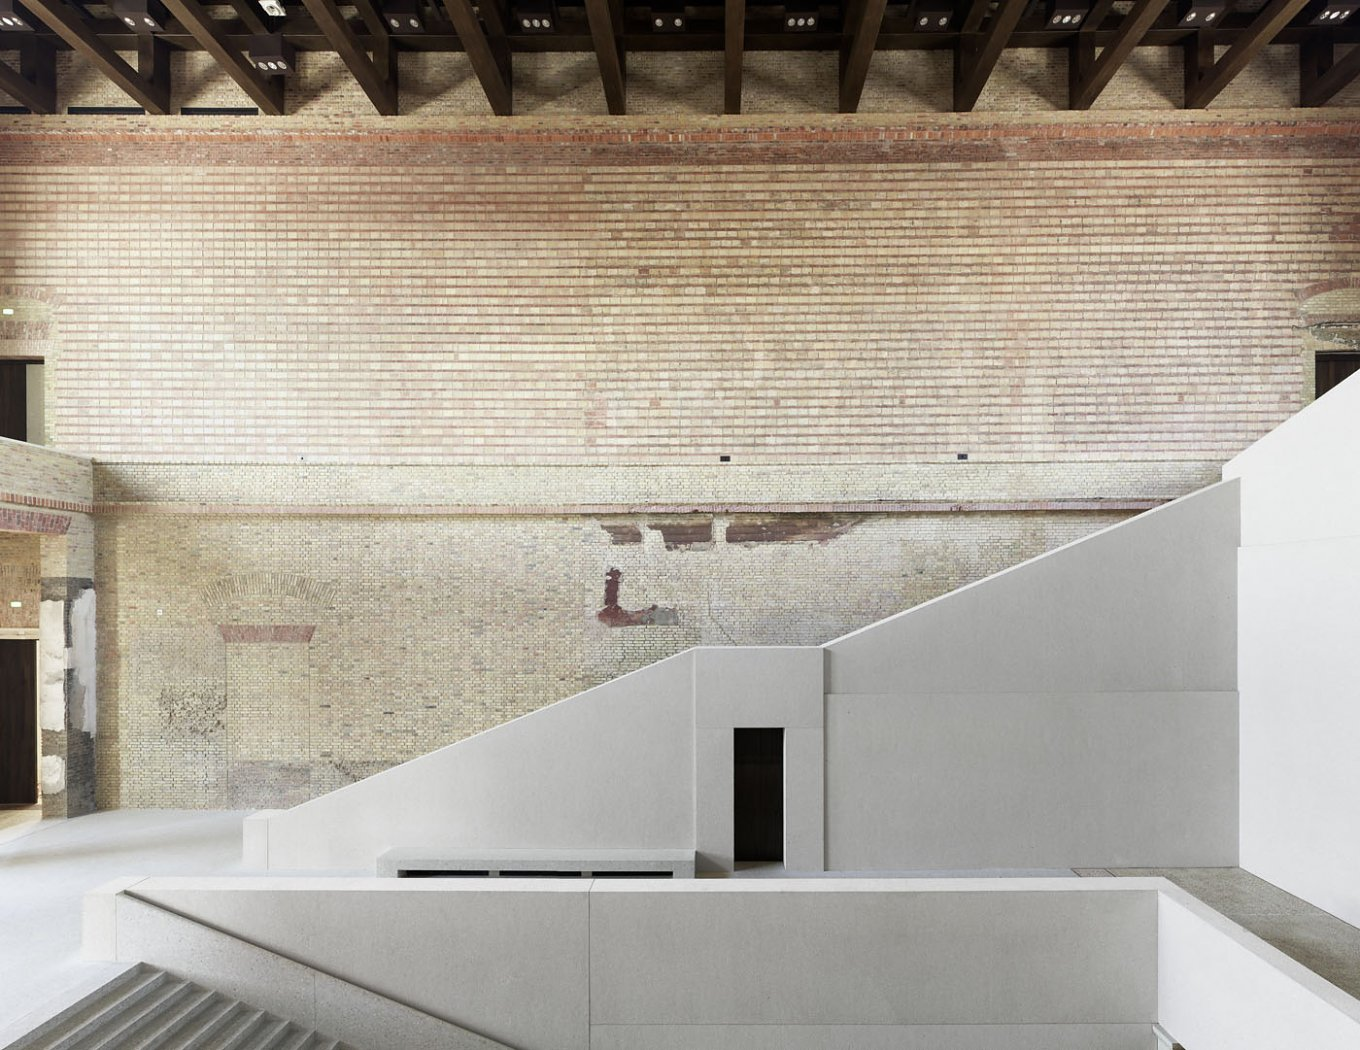 Museum For Architectural Drawing Berlin brilliant architecture drawing museum berlin in a for